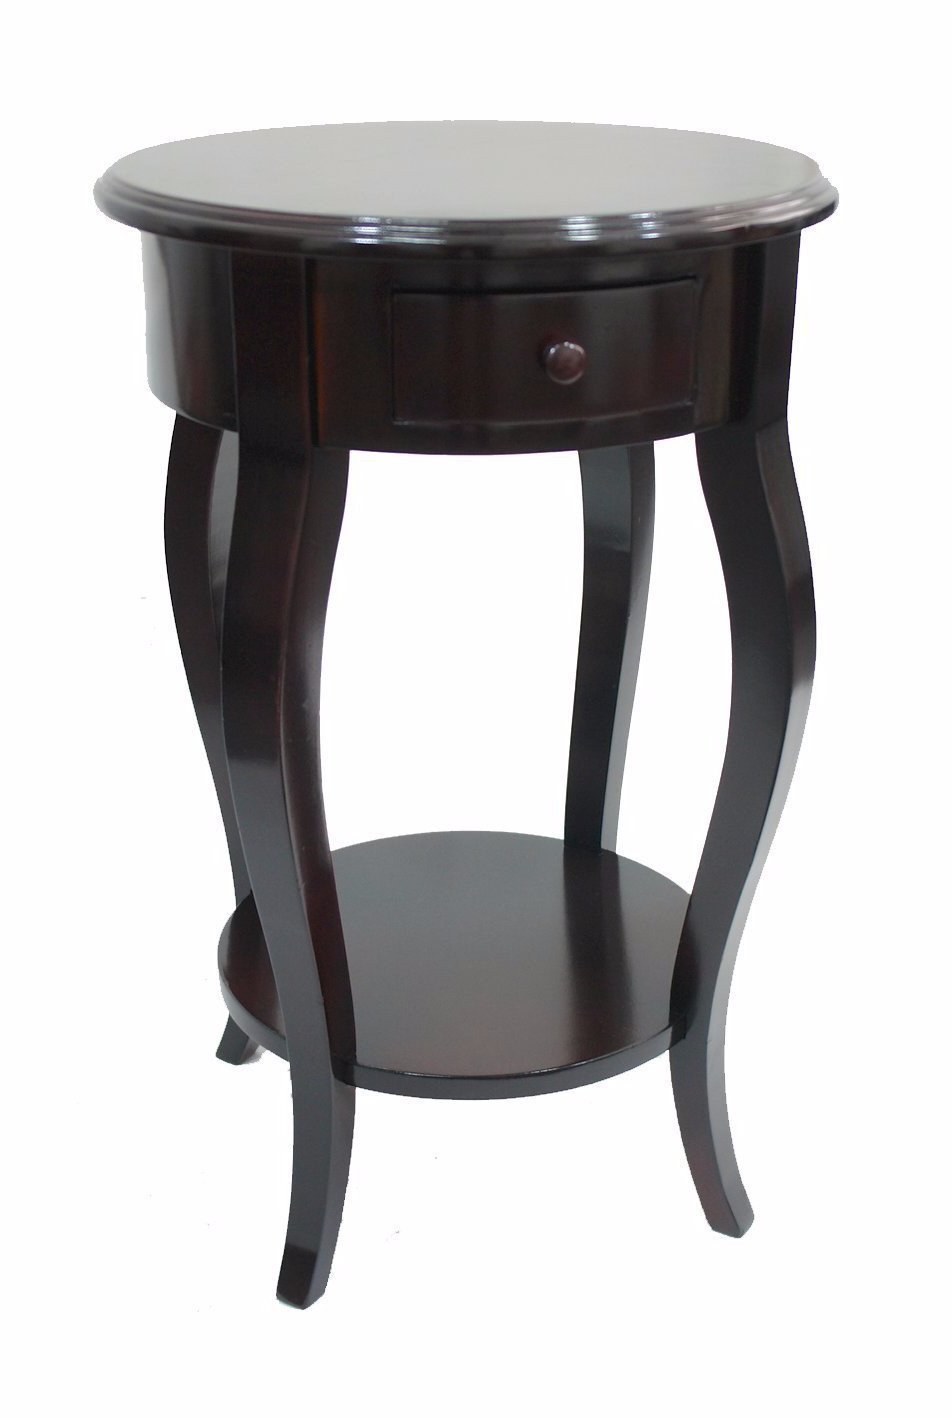 round accent side table dark brown urbanest keffl small garden furniture linens for inch console glass and brass pieces clear nest tables narrow entry legs tiffany nightstand